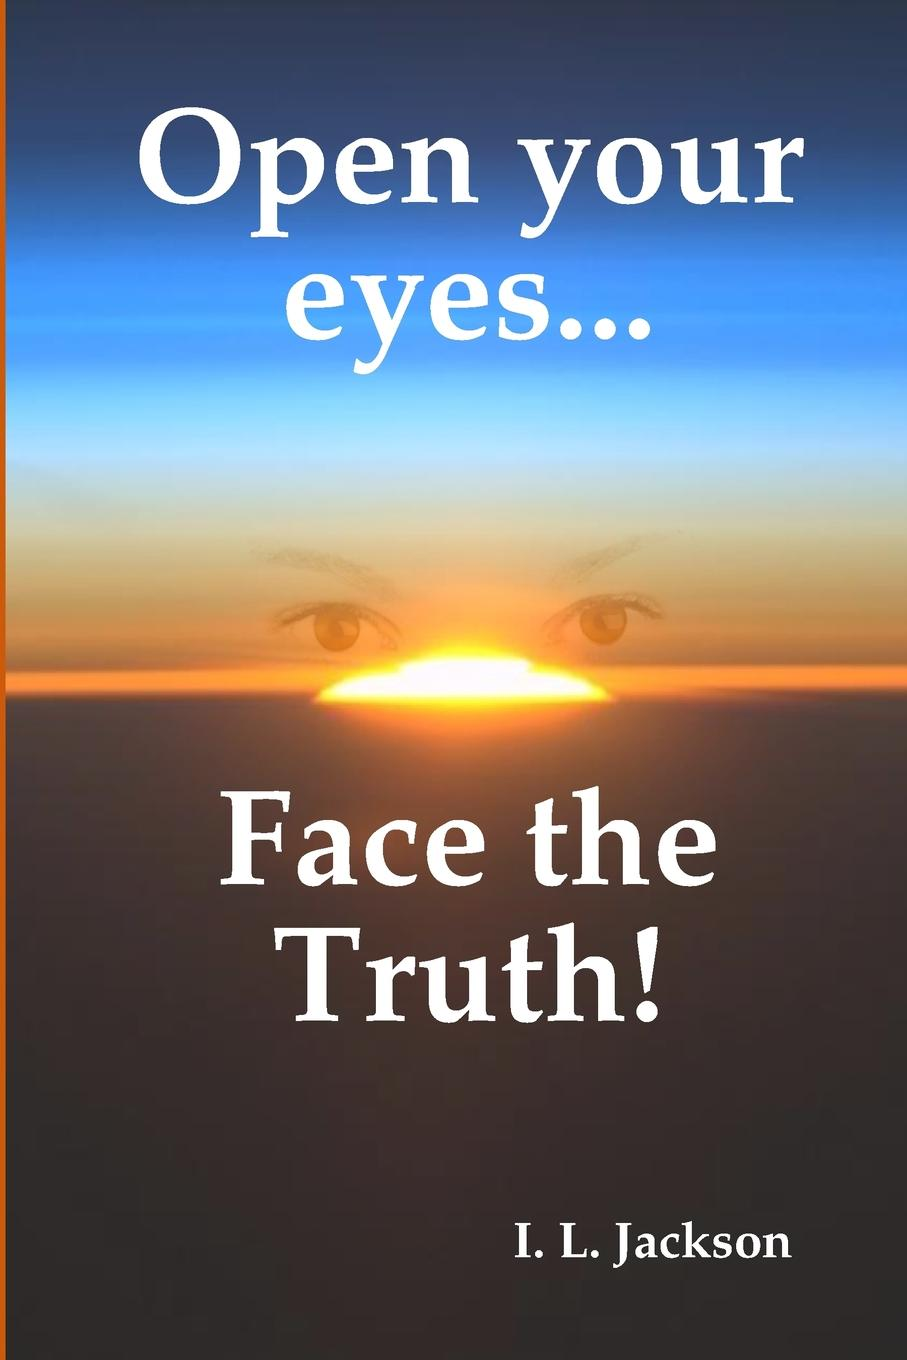 I. L. Jackson Open your eyes...Face the truth. then we come to the end